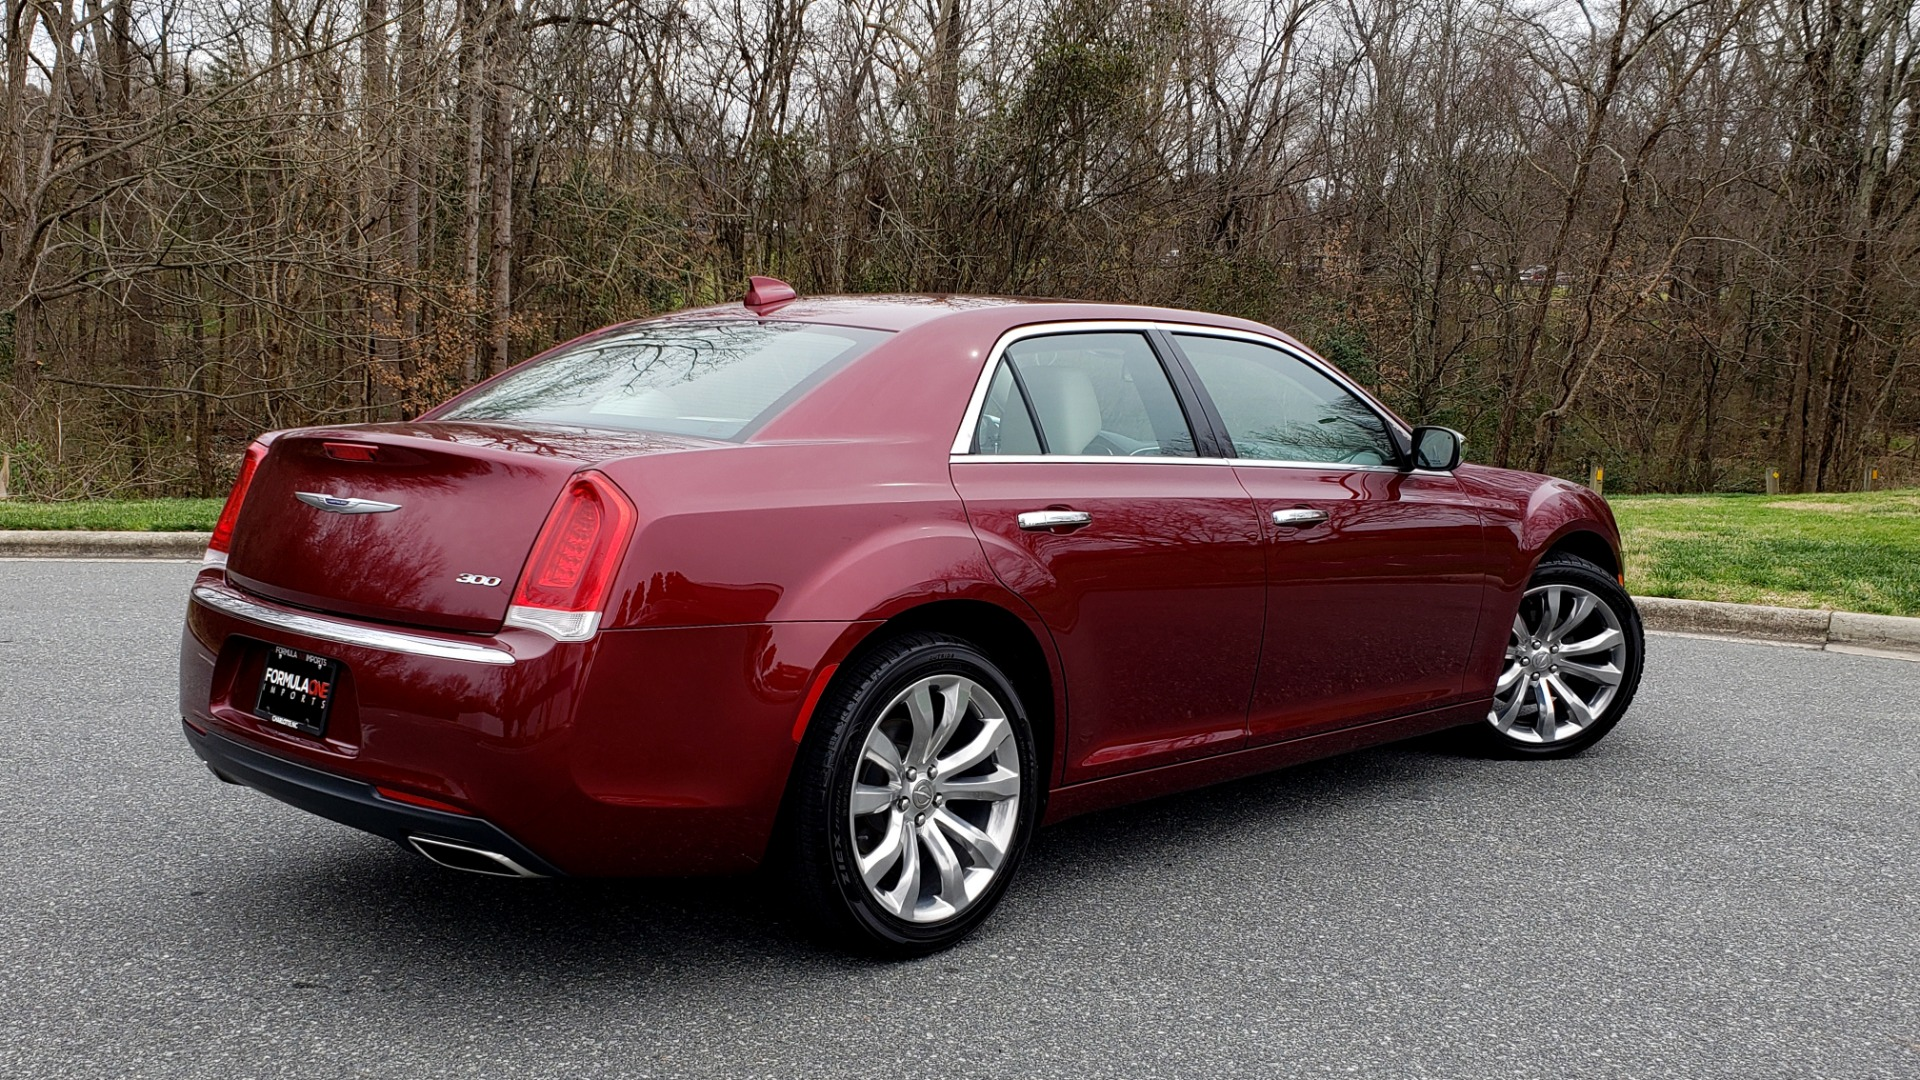 Used 2019 Chrysler 300 LIMITED / 3.6L V6 / 8-SPD AUTO / LEATHER / REARVIEW for sale Sold at Formula Imports in Charlotte NC 28227 9